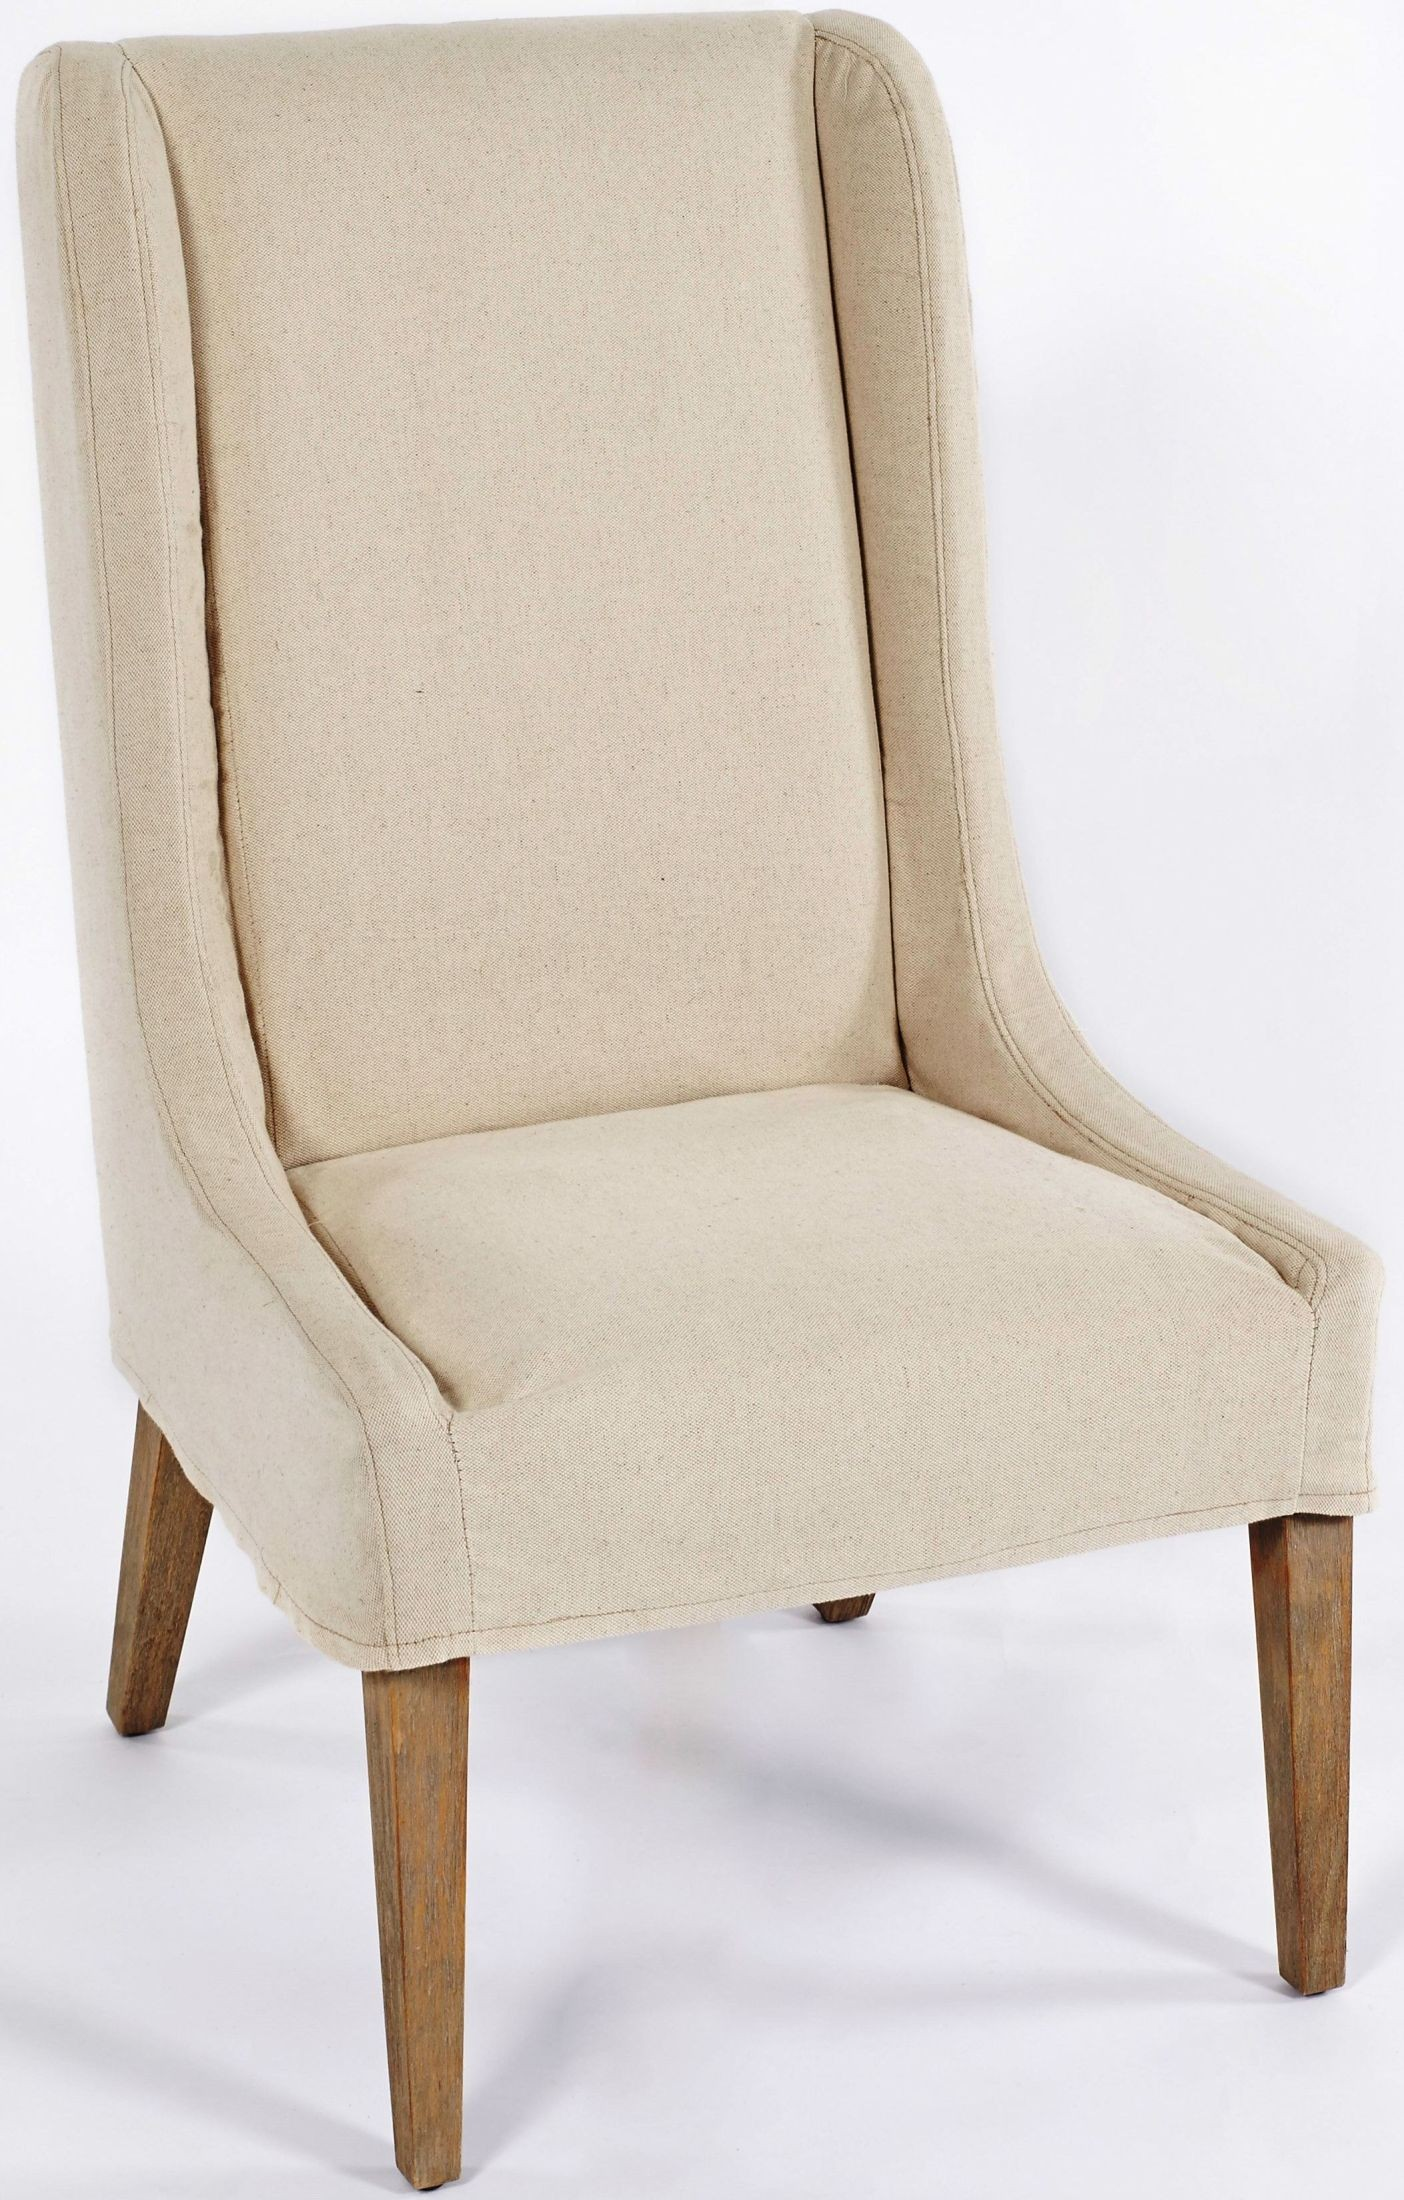 Off White Accent Chair Kiley Biscotti And Off White Slipcovered Accent Chair From